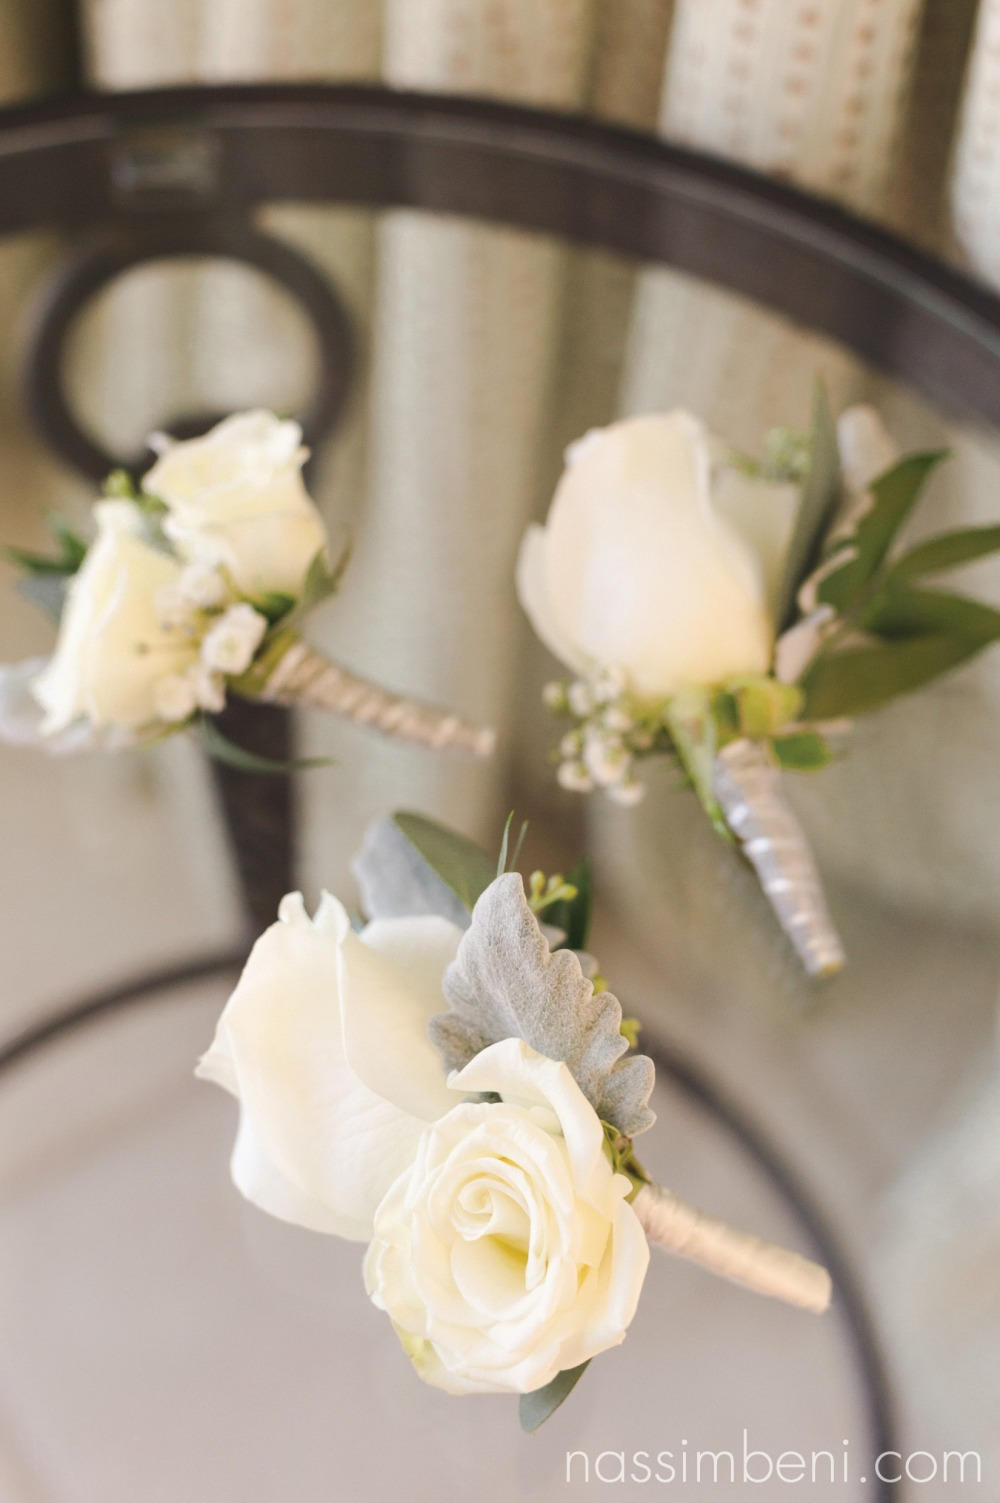 Giordano's floral creations boutonnières at palm beach shores resort by nassimbeni photography